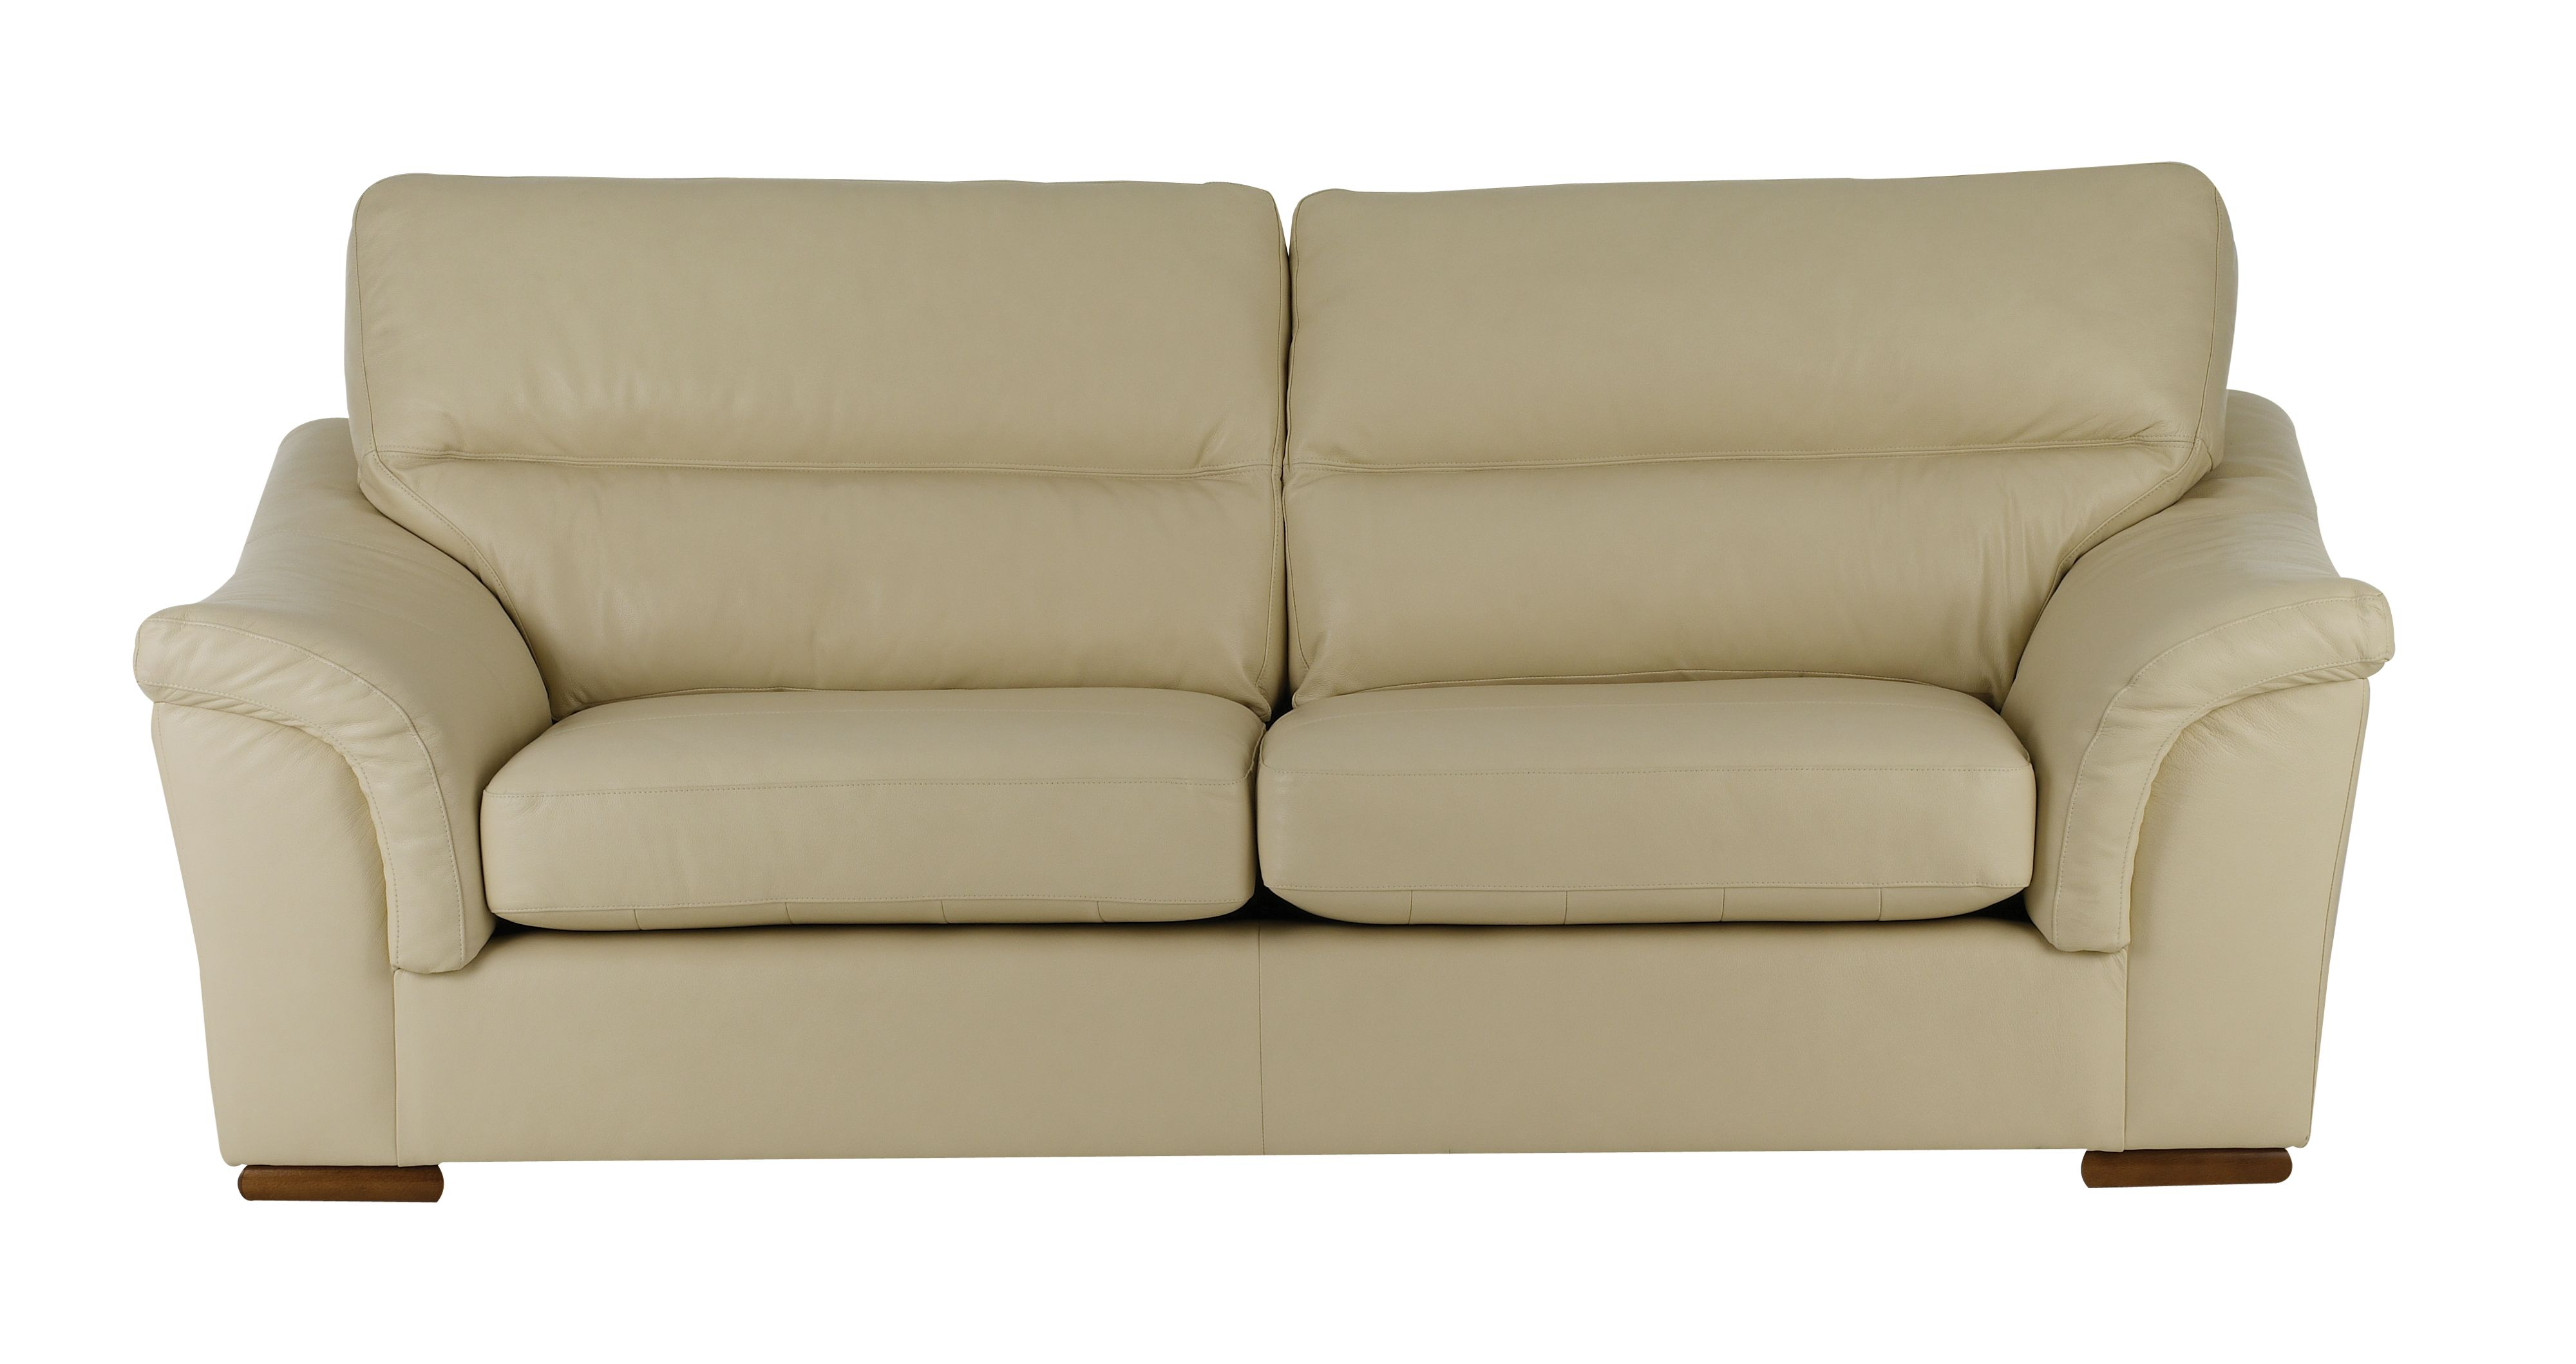 Linea luganno large two seater sofa review compare for Housse of fraser